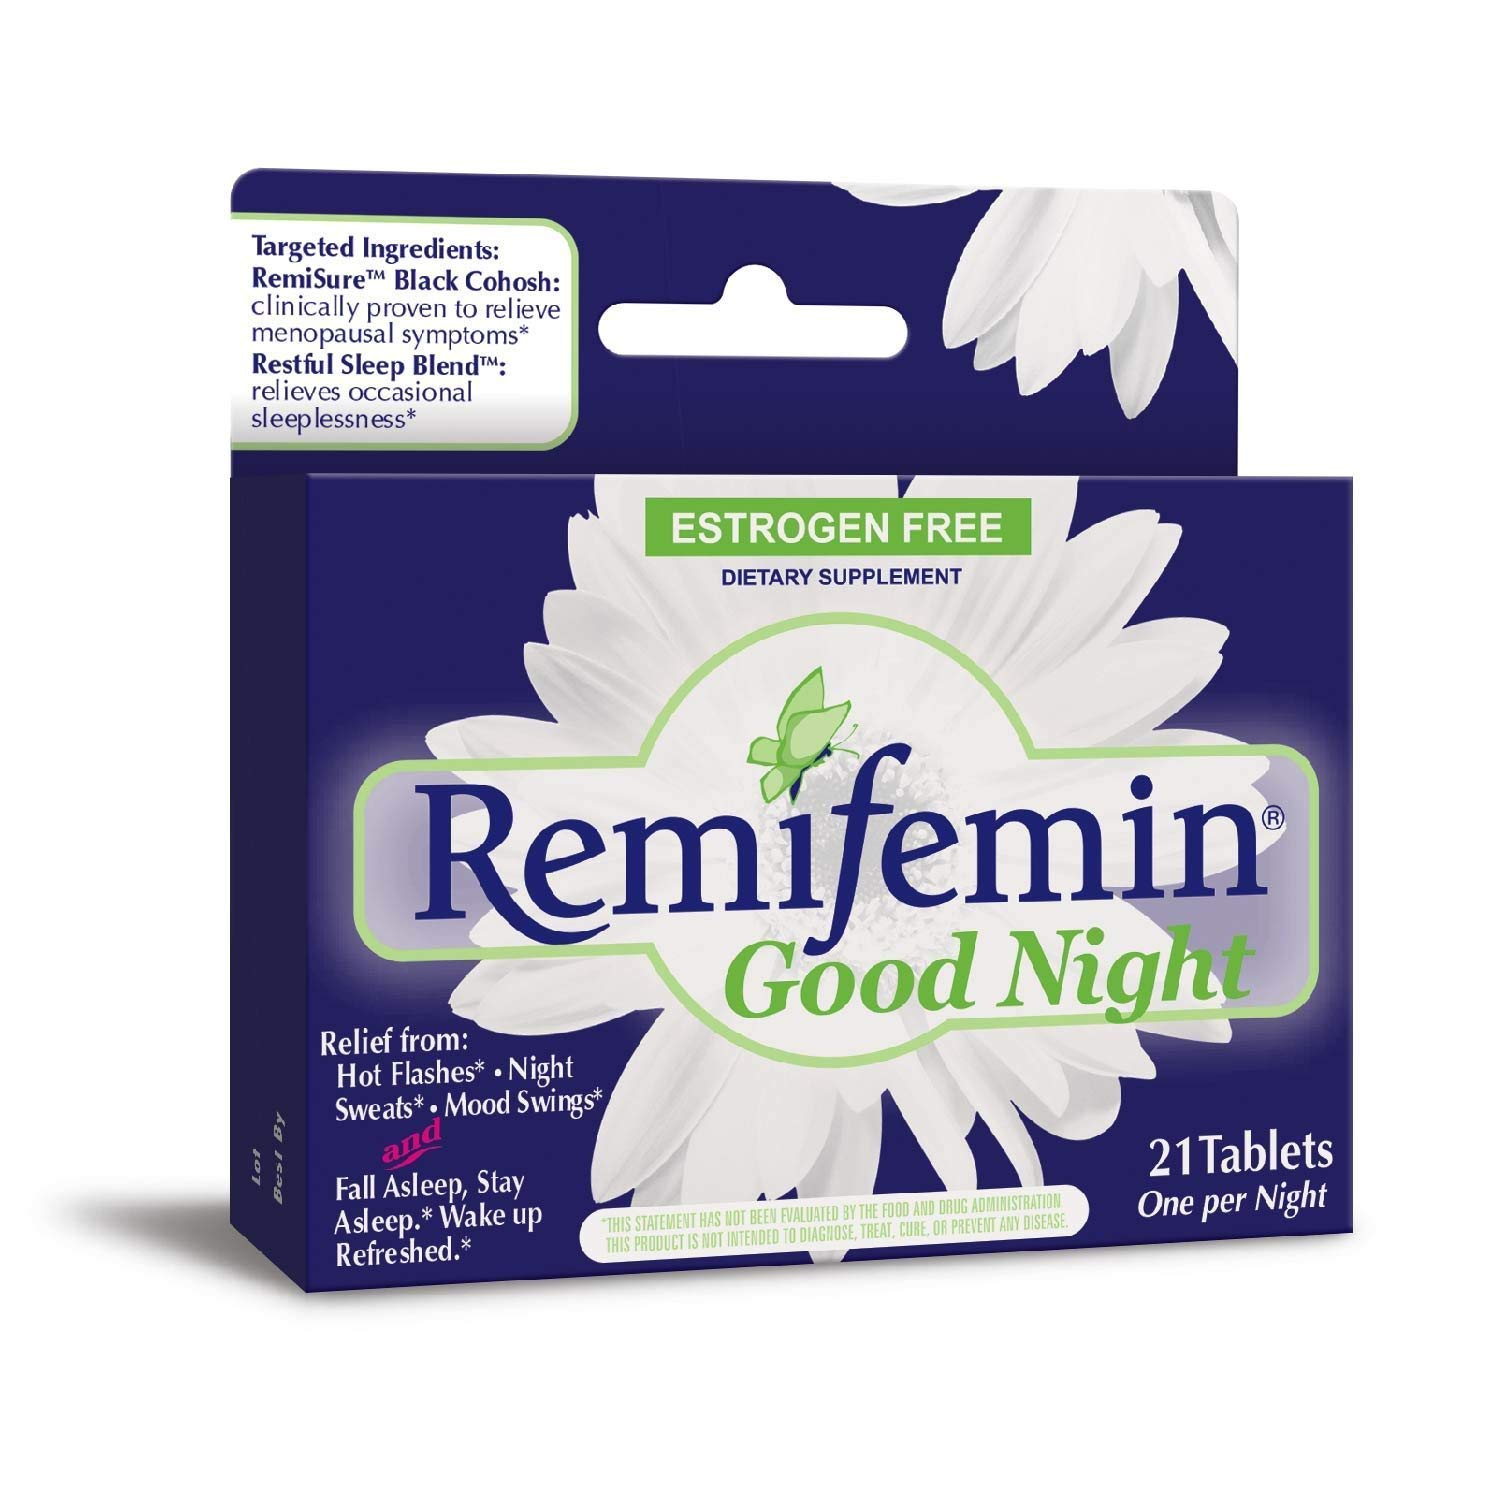 Remifemin Good Night Tablets 21 Tablets (Pack of 7) by Remifemin (Image #1)